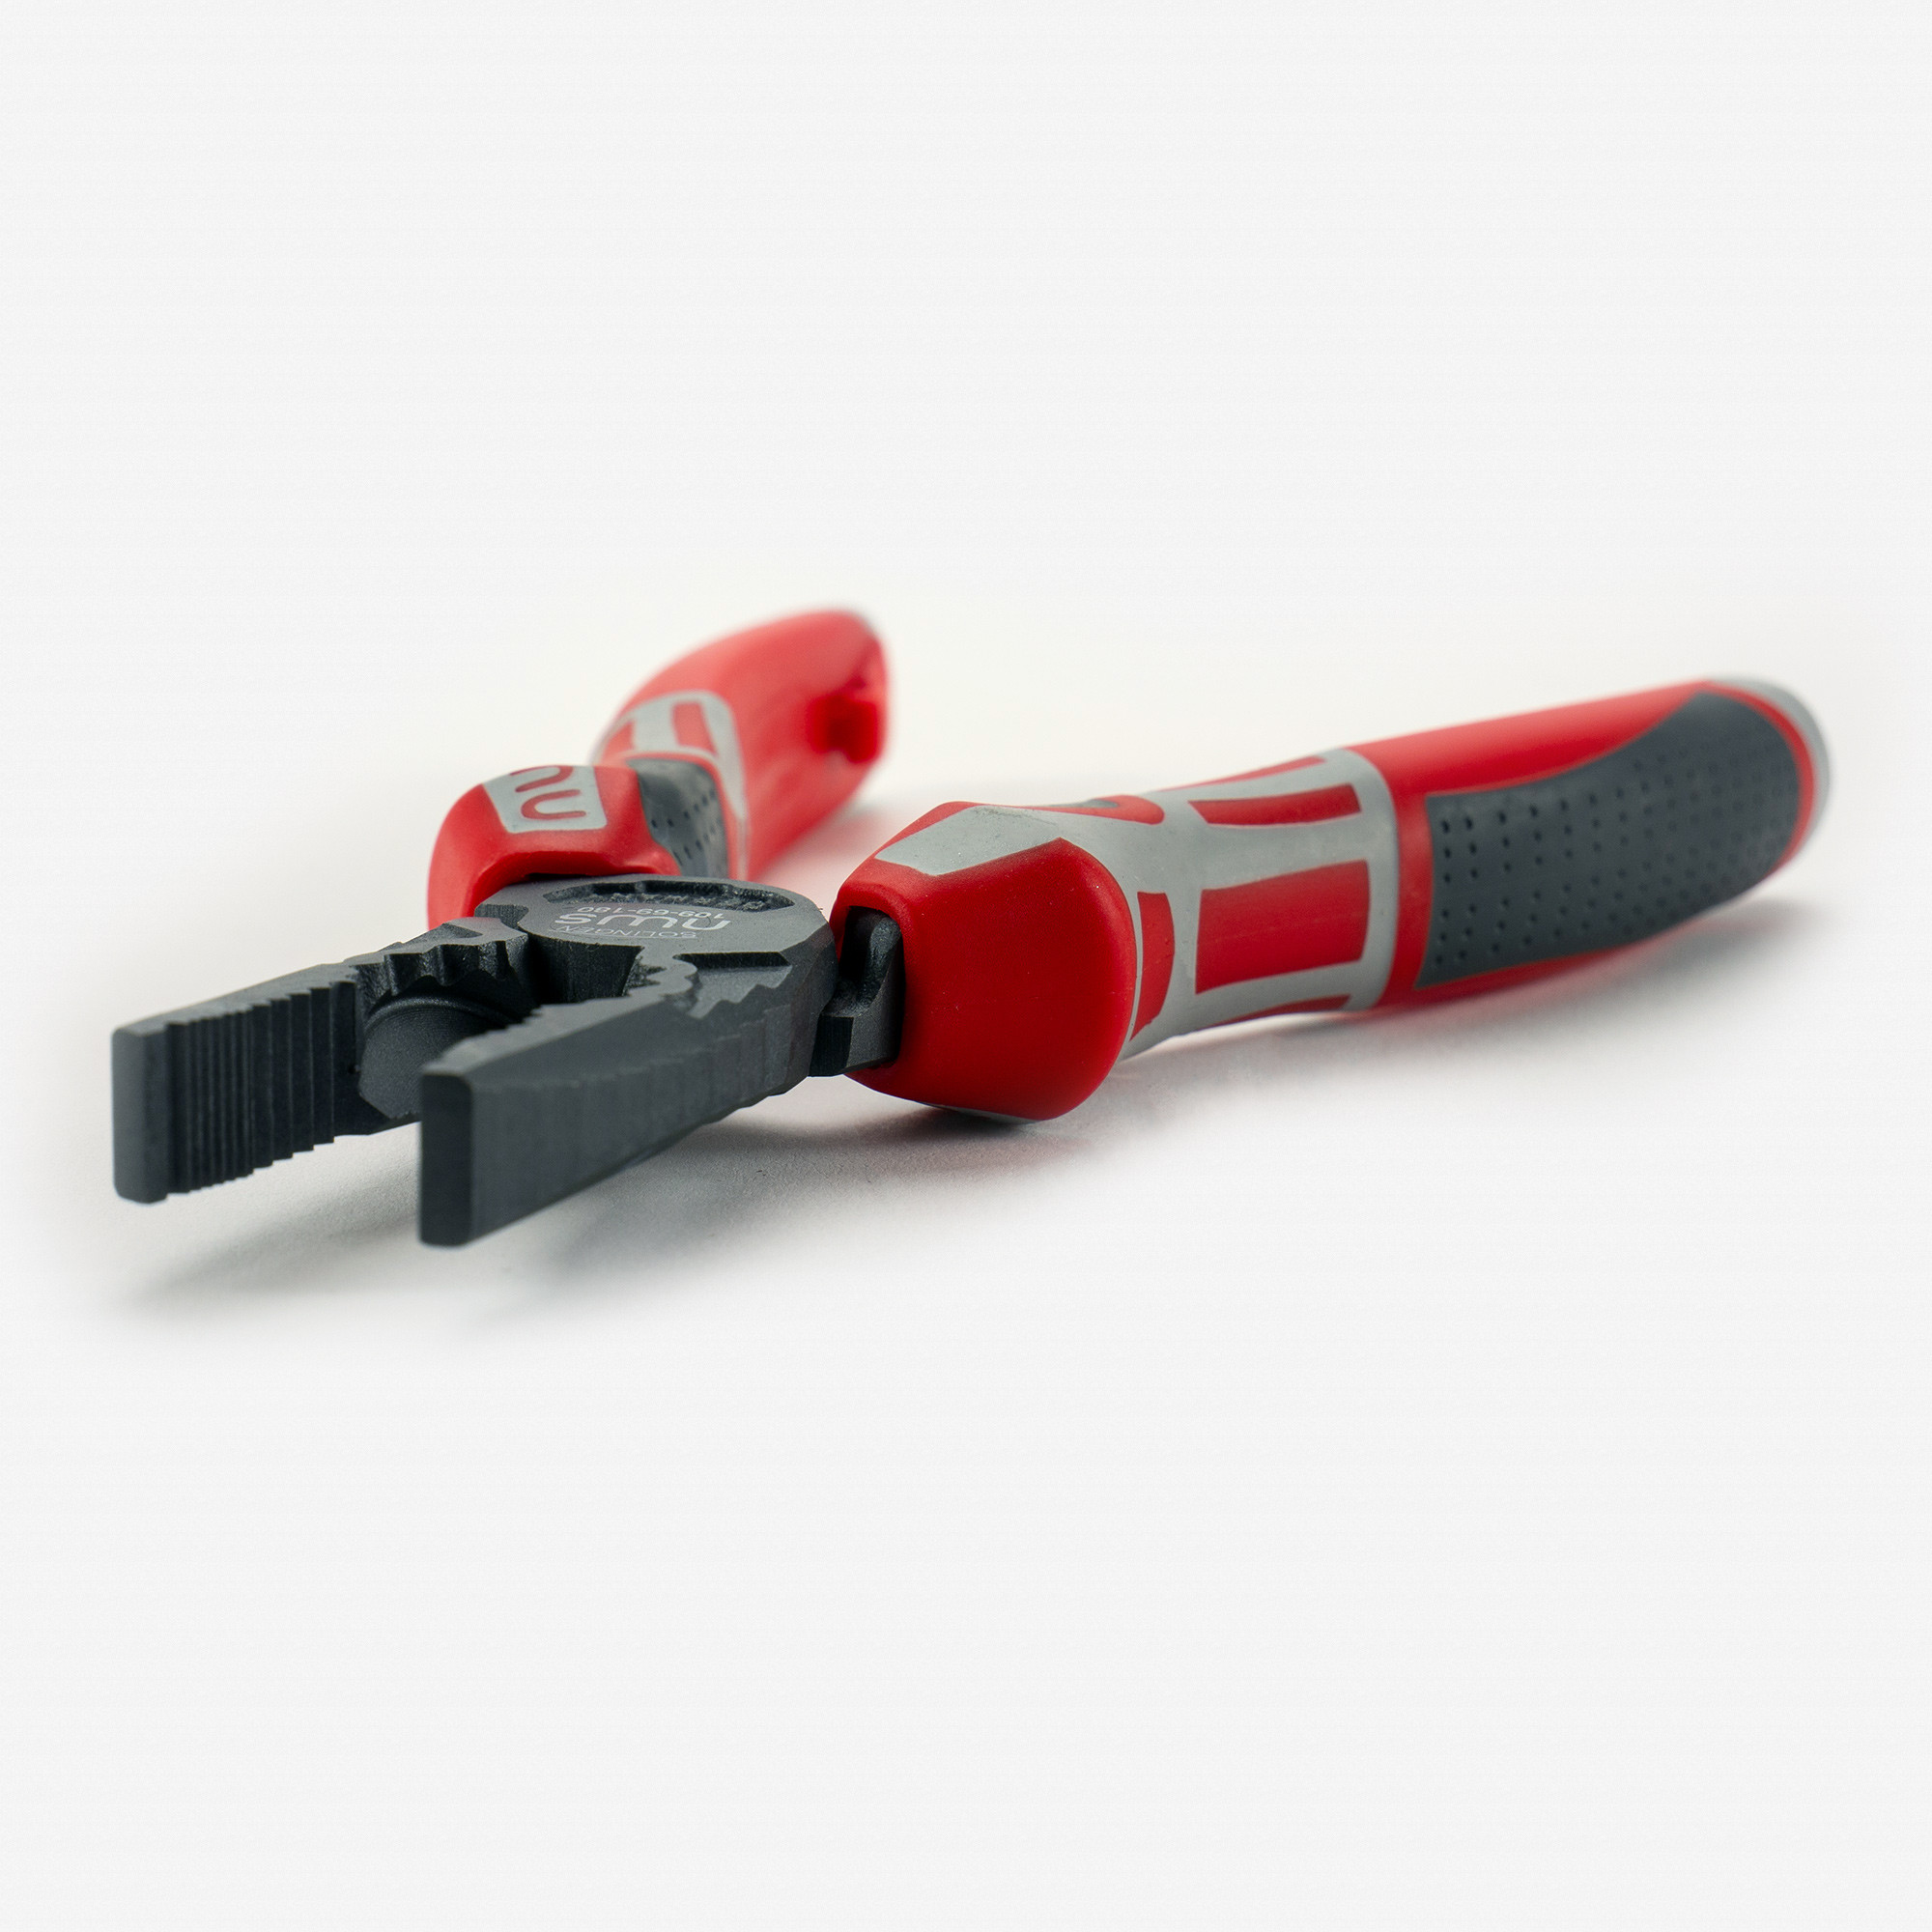 """NWS 109-69-180 7"""" High Leverage Combination Pliers CombiMa - xTitanFinish - SoftGripp - KC Tool"""